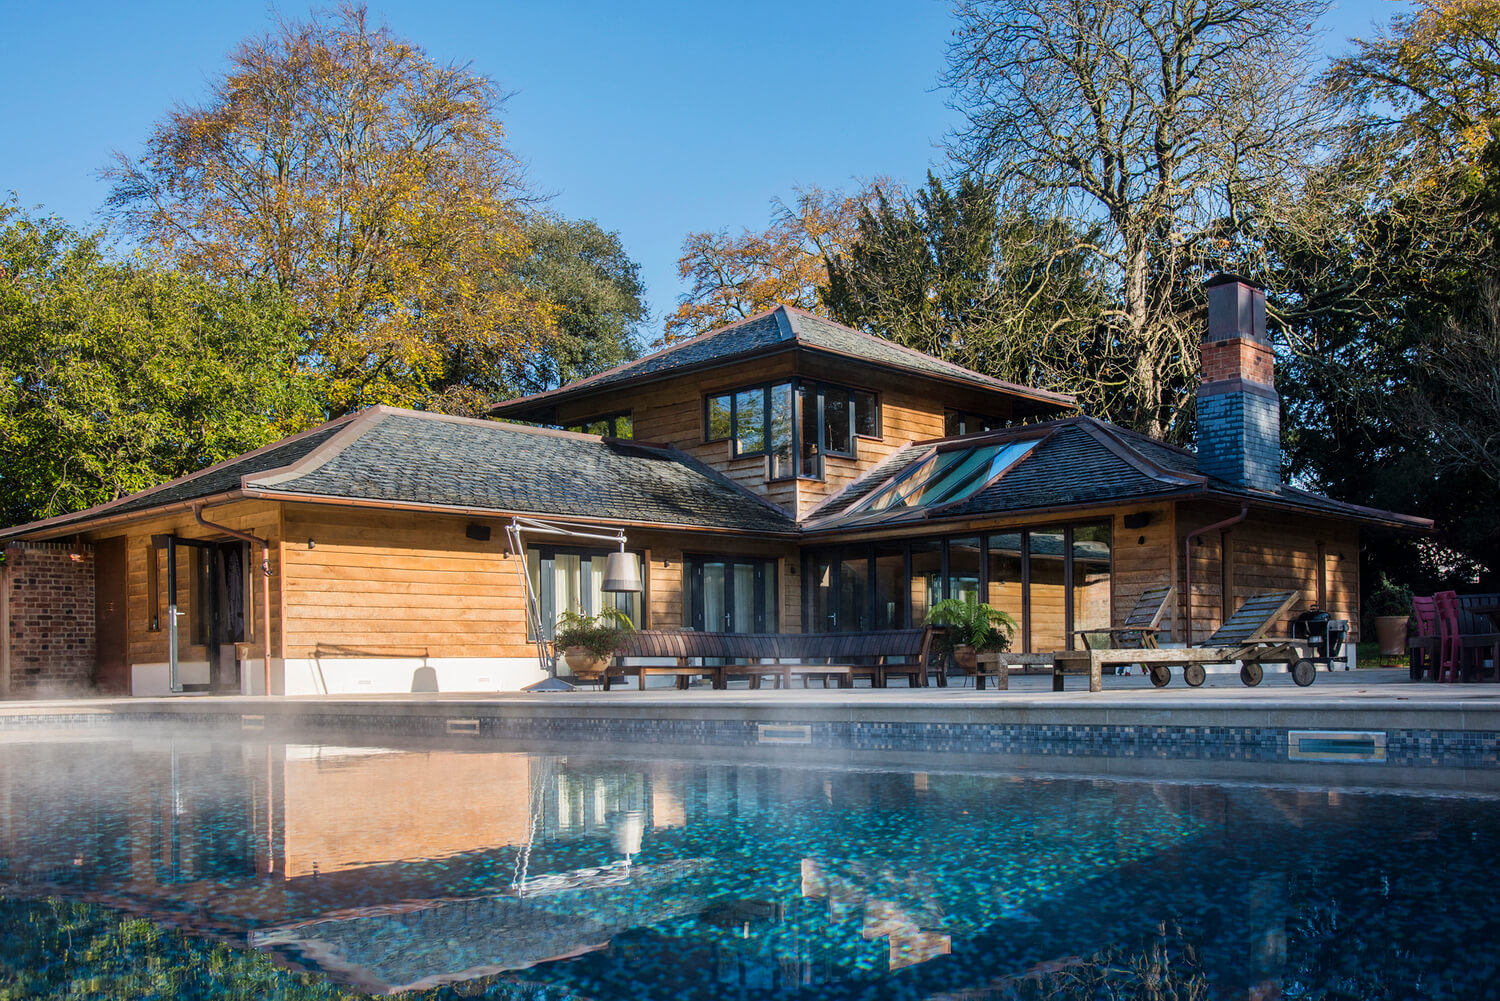 Property and architectural photography for design projects in Cheltenham. New Summer House